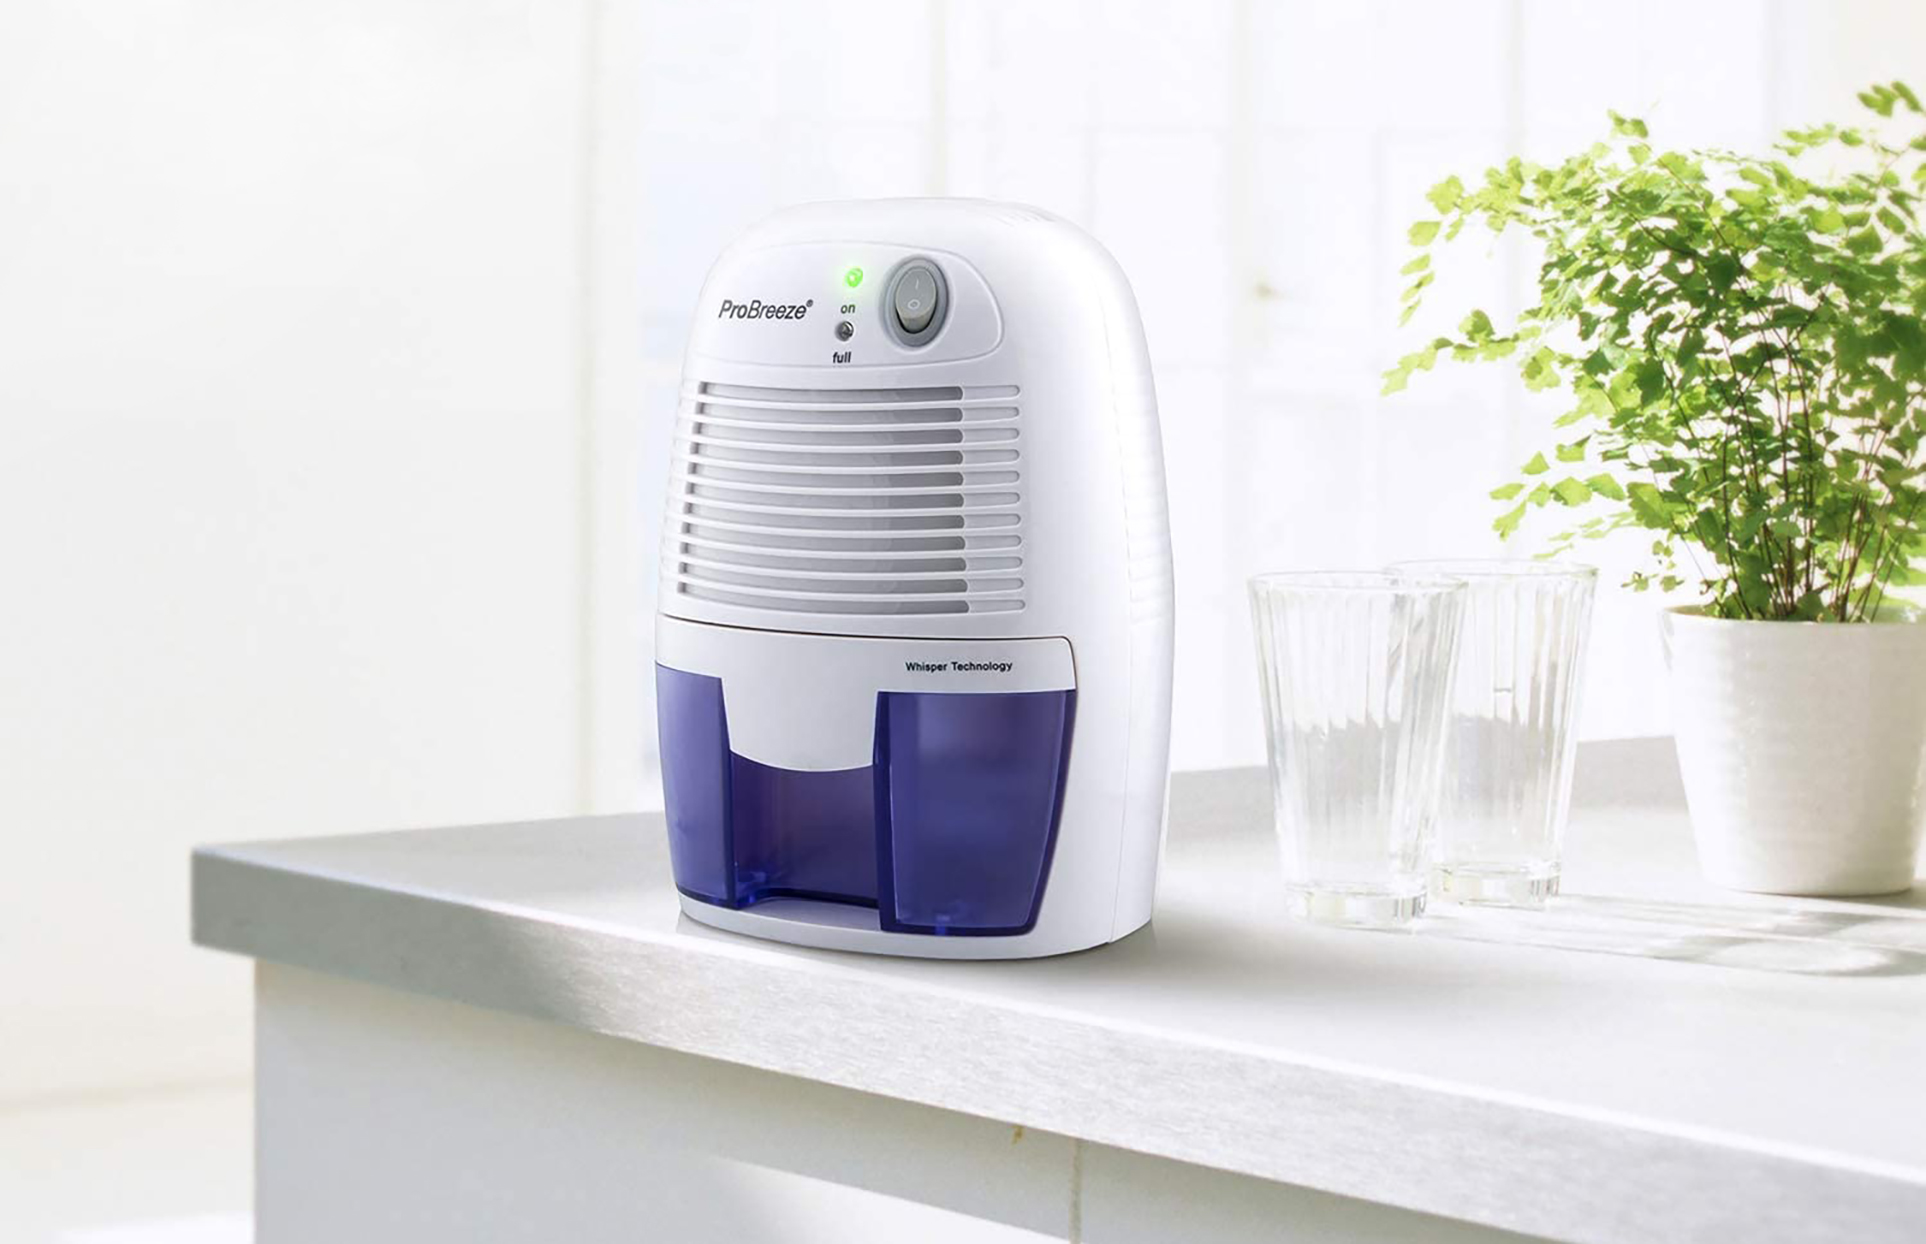 small dehumidifier on kitchen counter